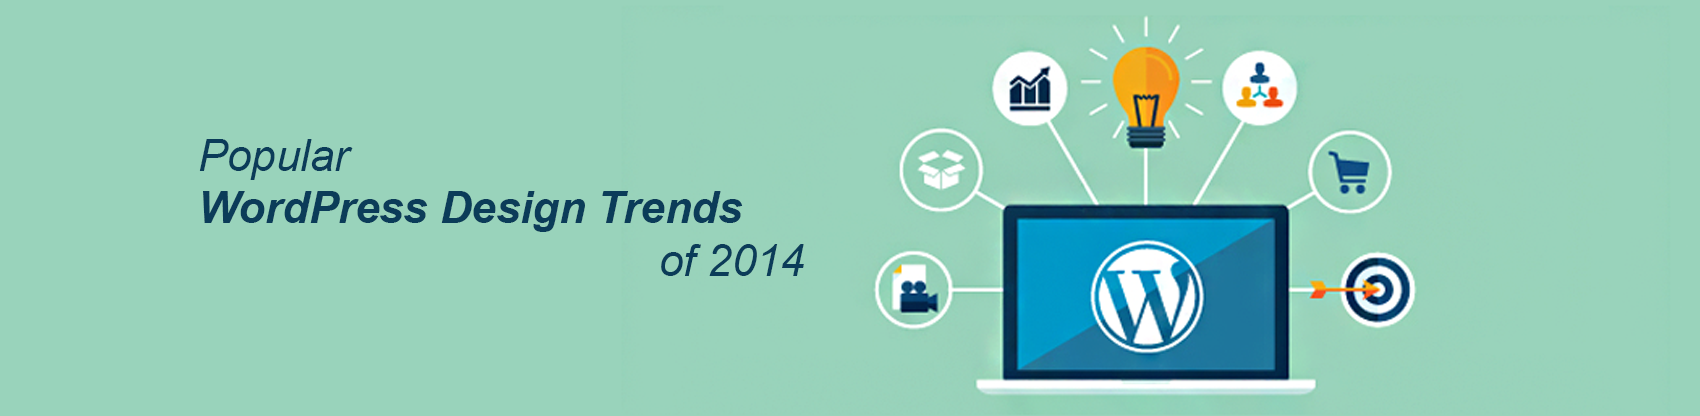 Popular WordPress Design Trends of 2014